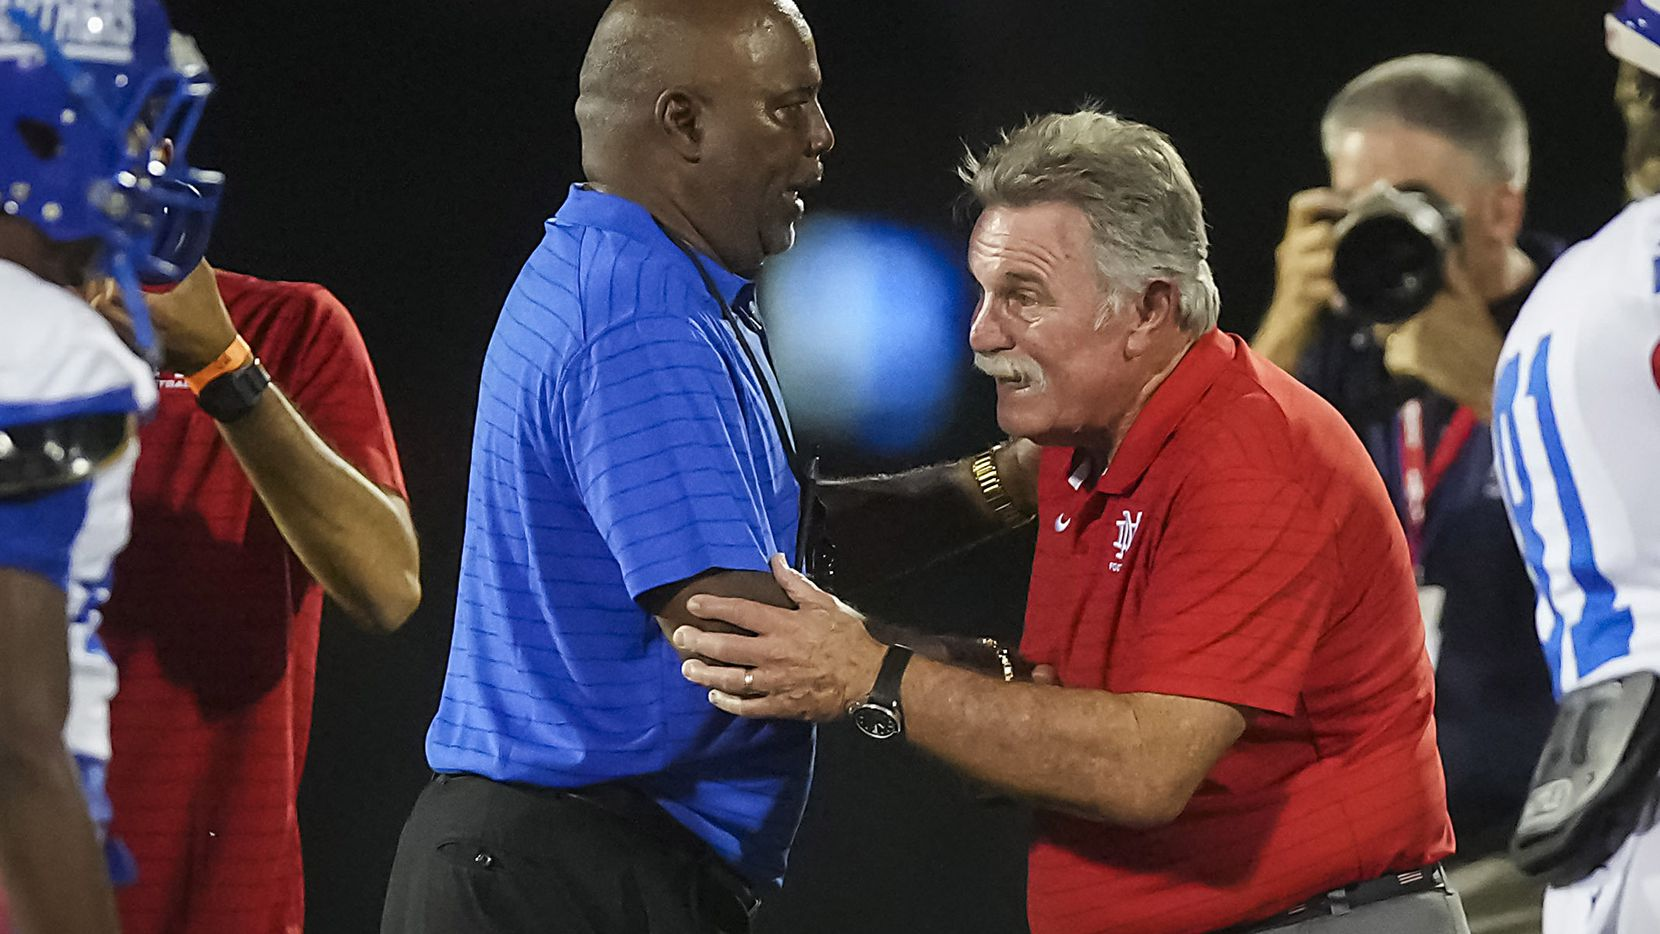 Duncanville head coach Reginald Samples (left) shakes hands with Mater Dei head coach Bruce Rollinson  after a high school football game on Friday, Aug. 27, 2021, in Duncanville.